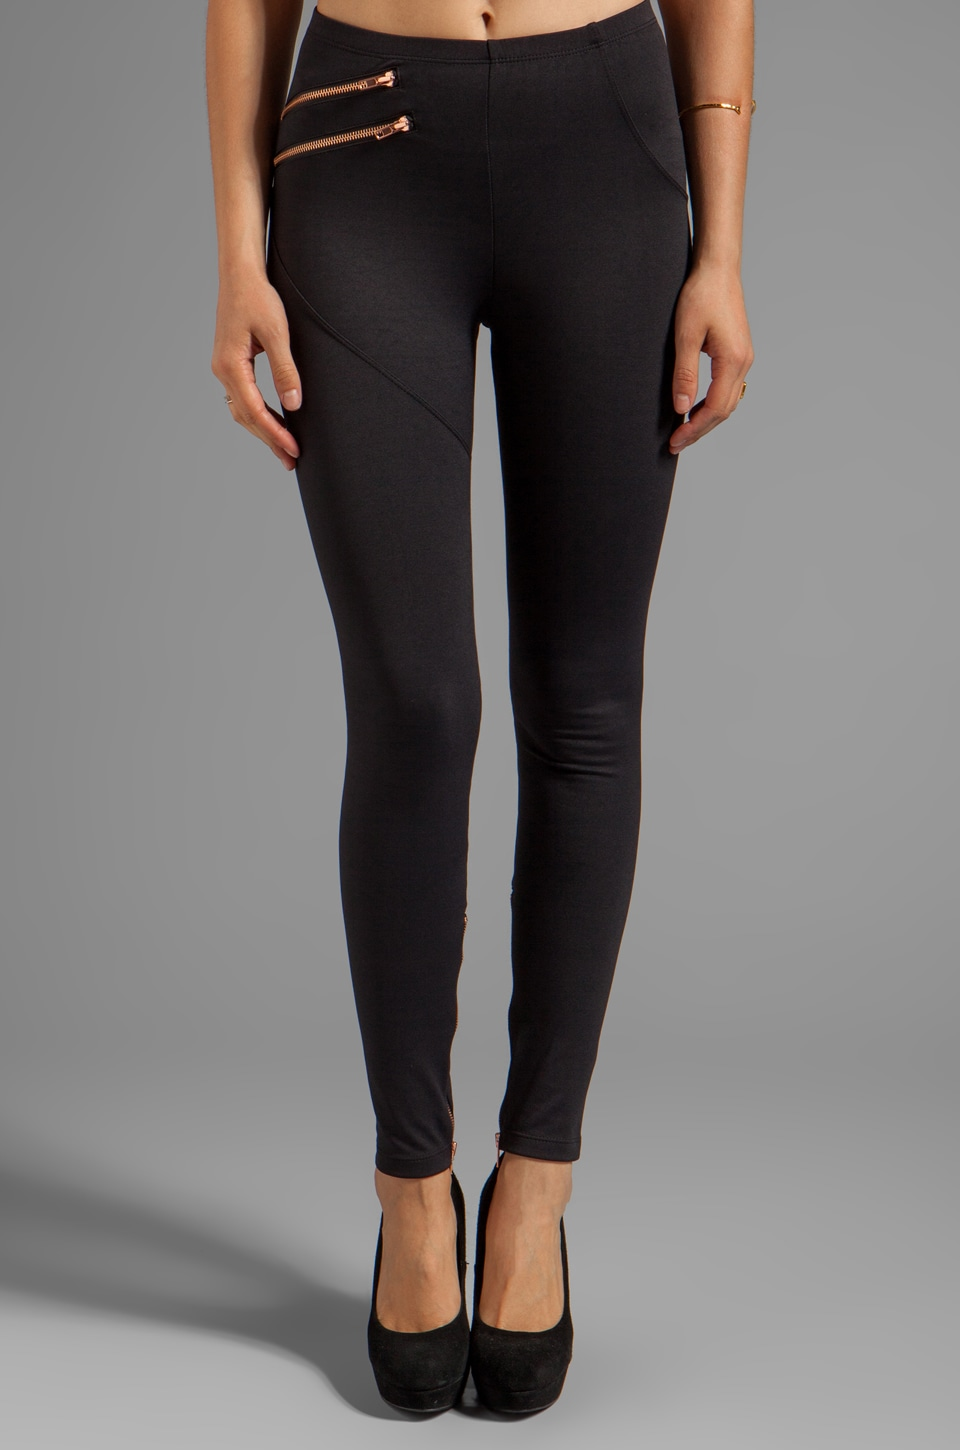 LNA Miranda Legging in Black